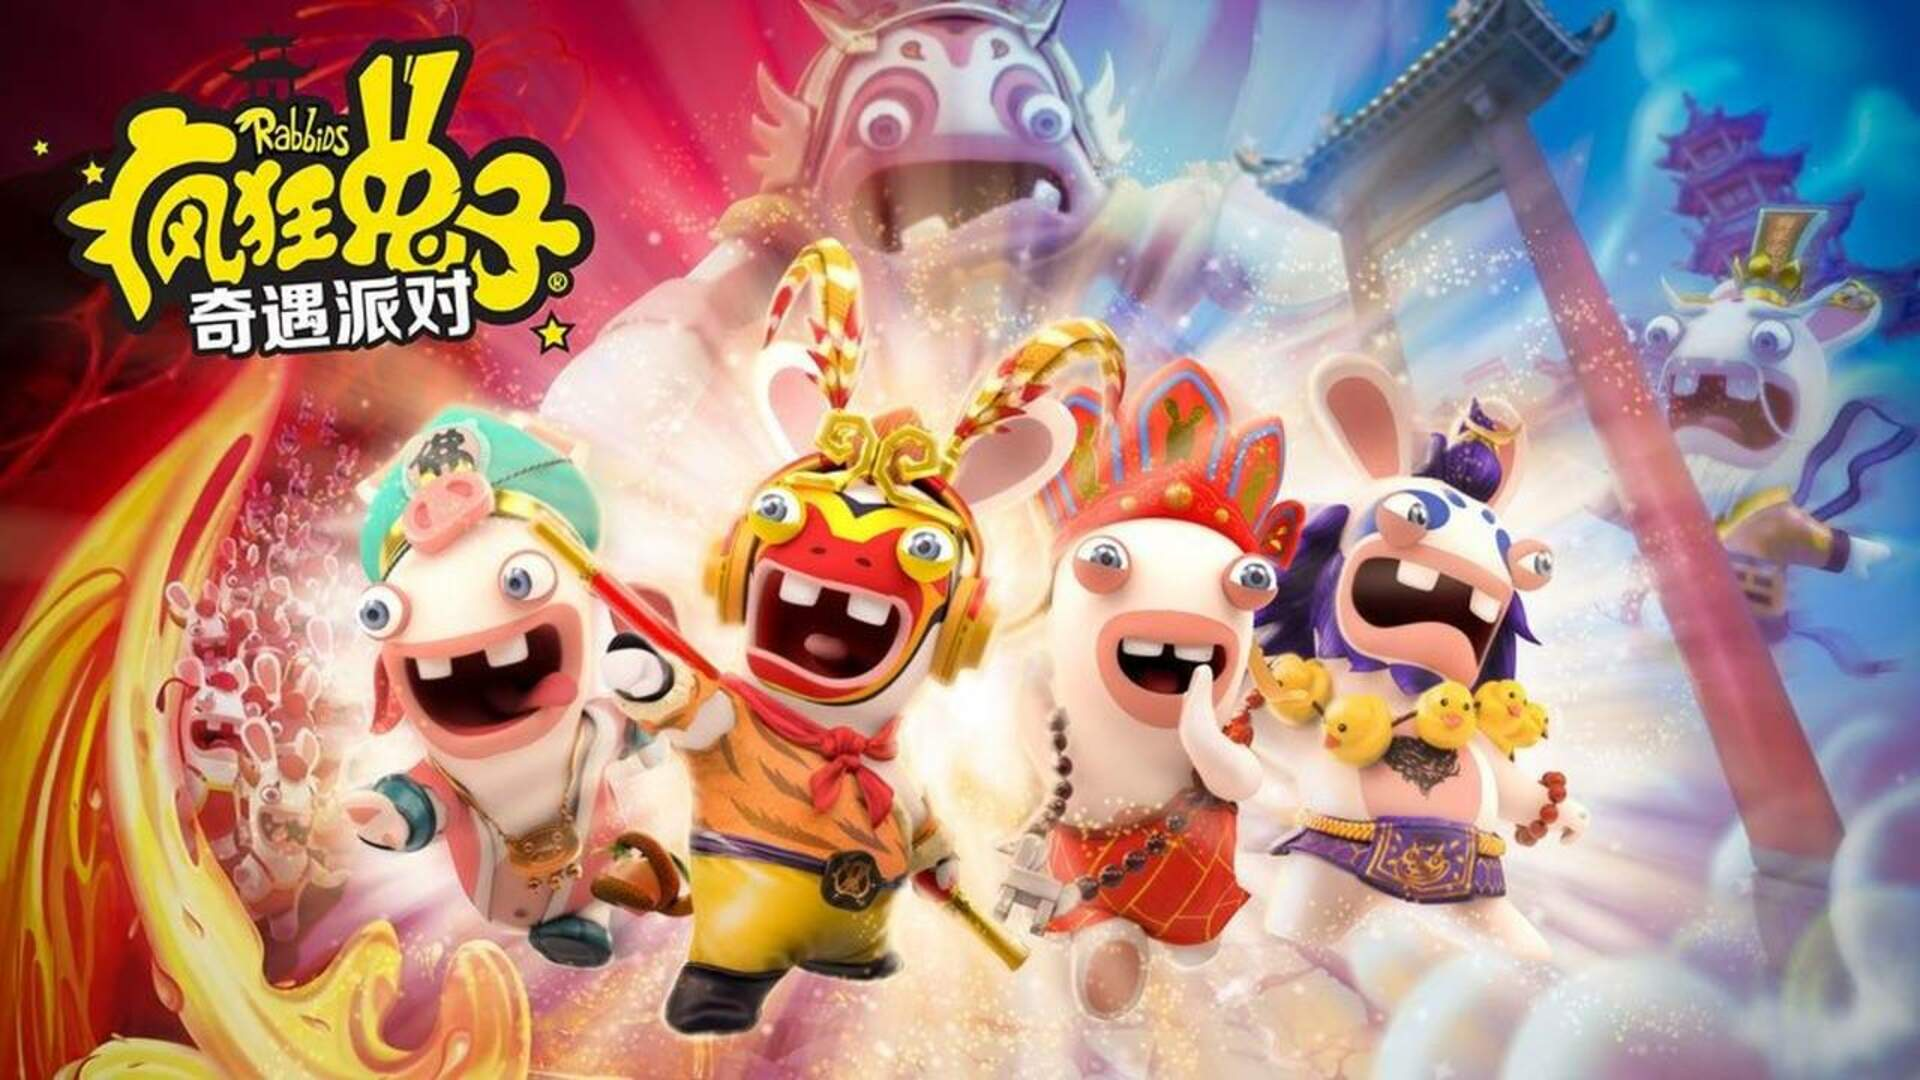 Ubisoft is Making a New Rabbids Party Game, But You Might Not Get to Play It